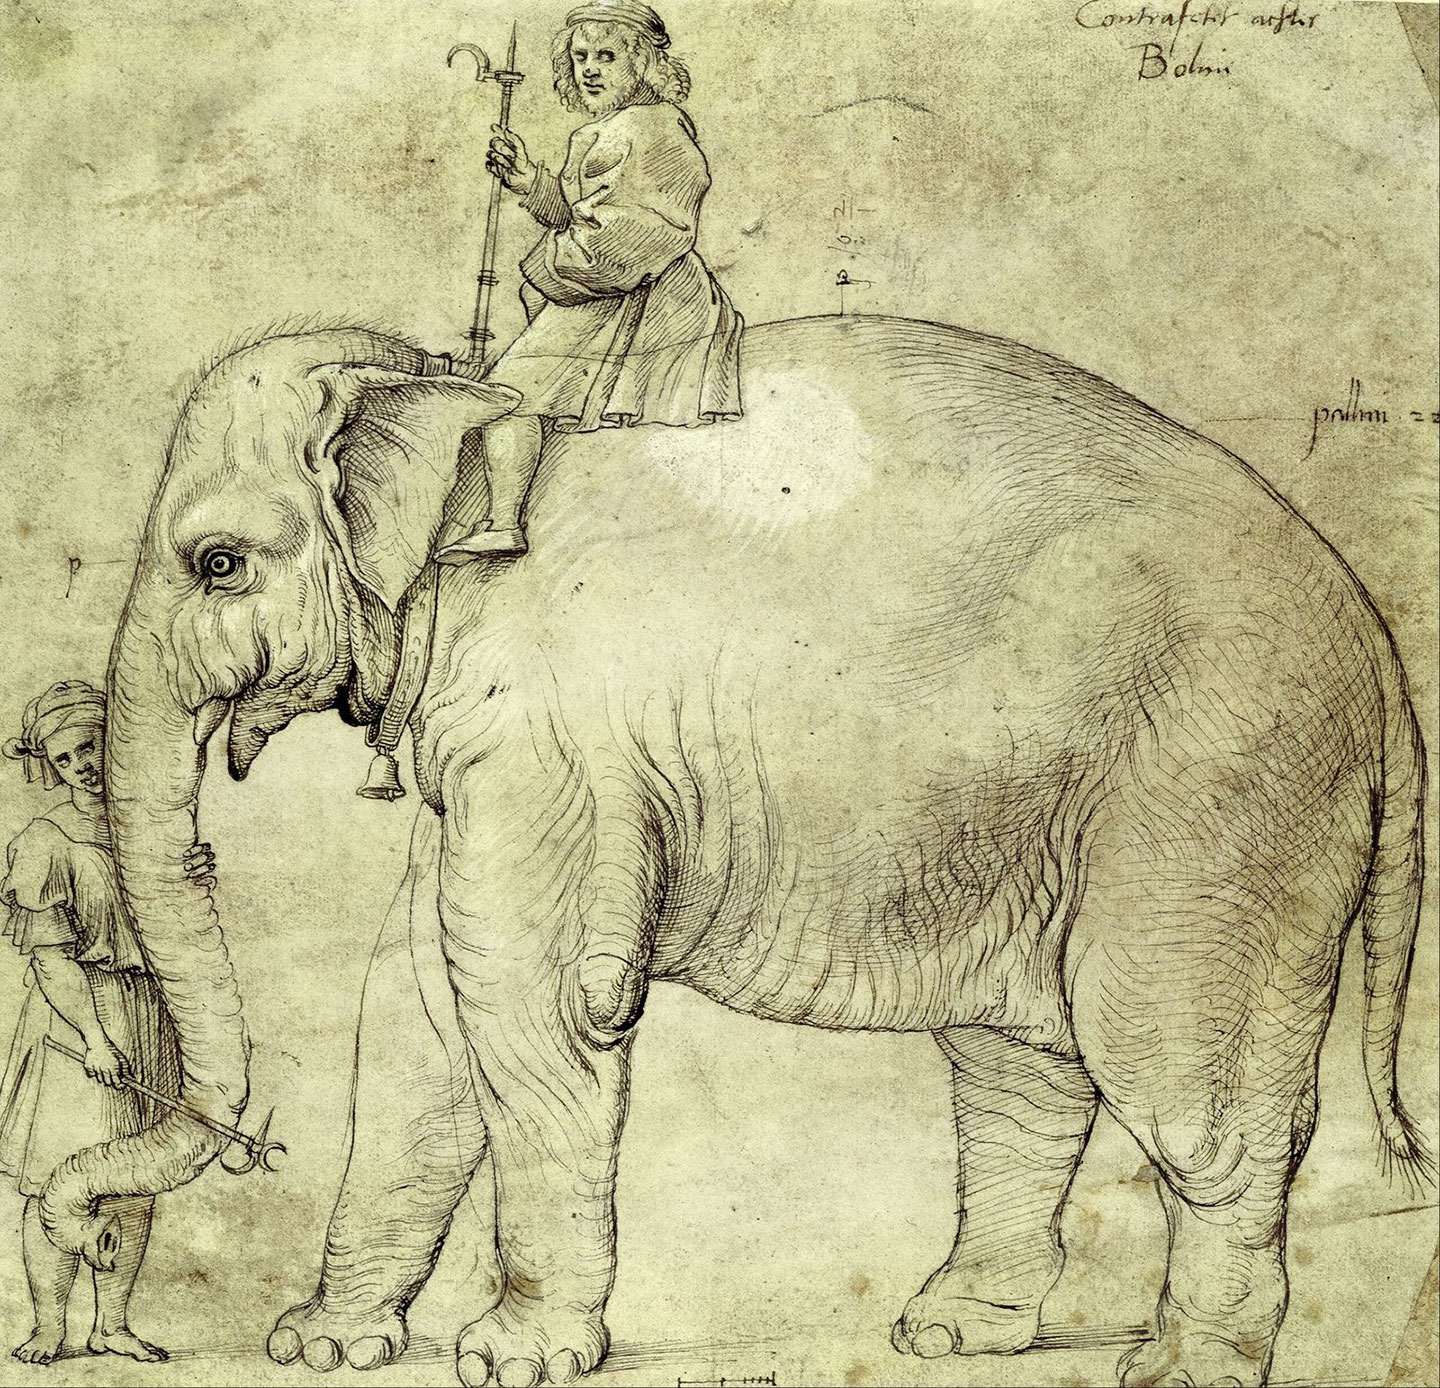 A sketch of Hanno and a rider, from 1514